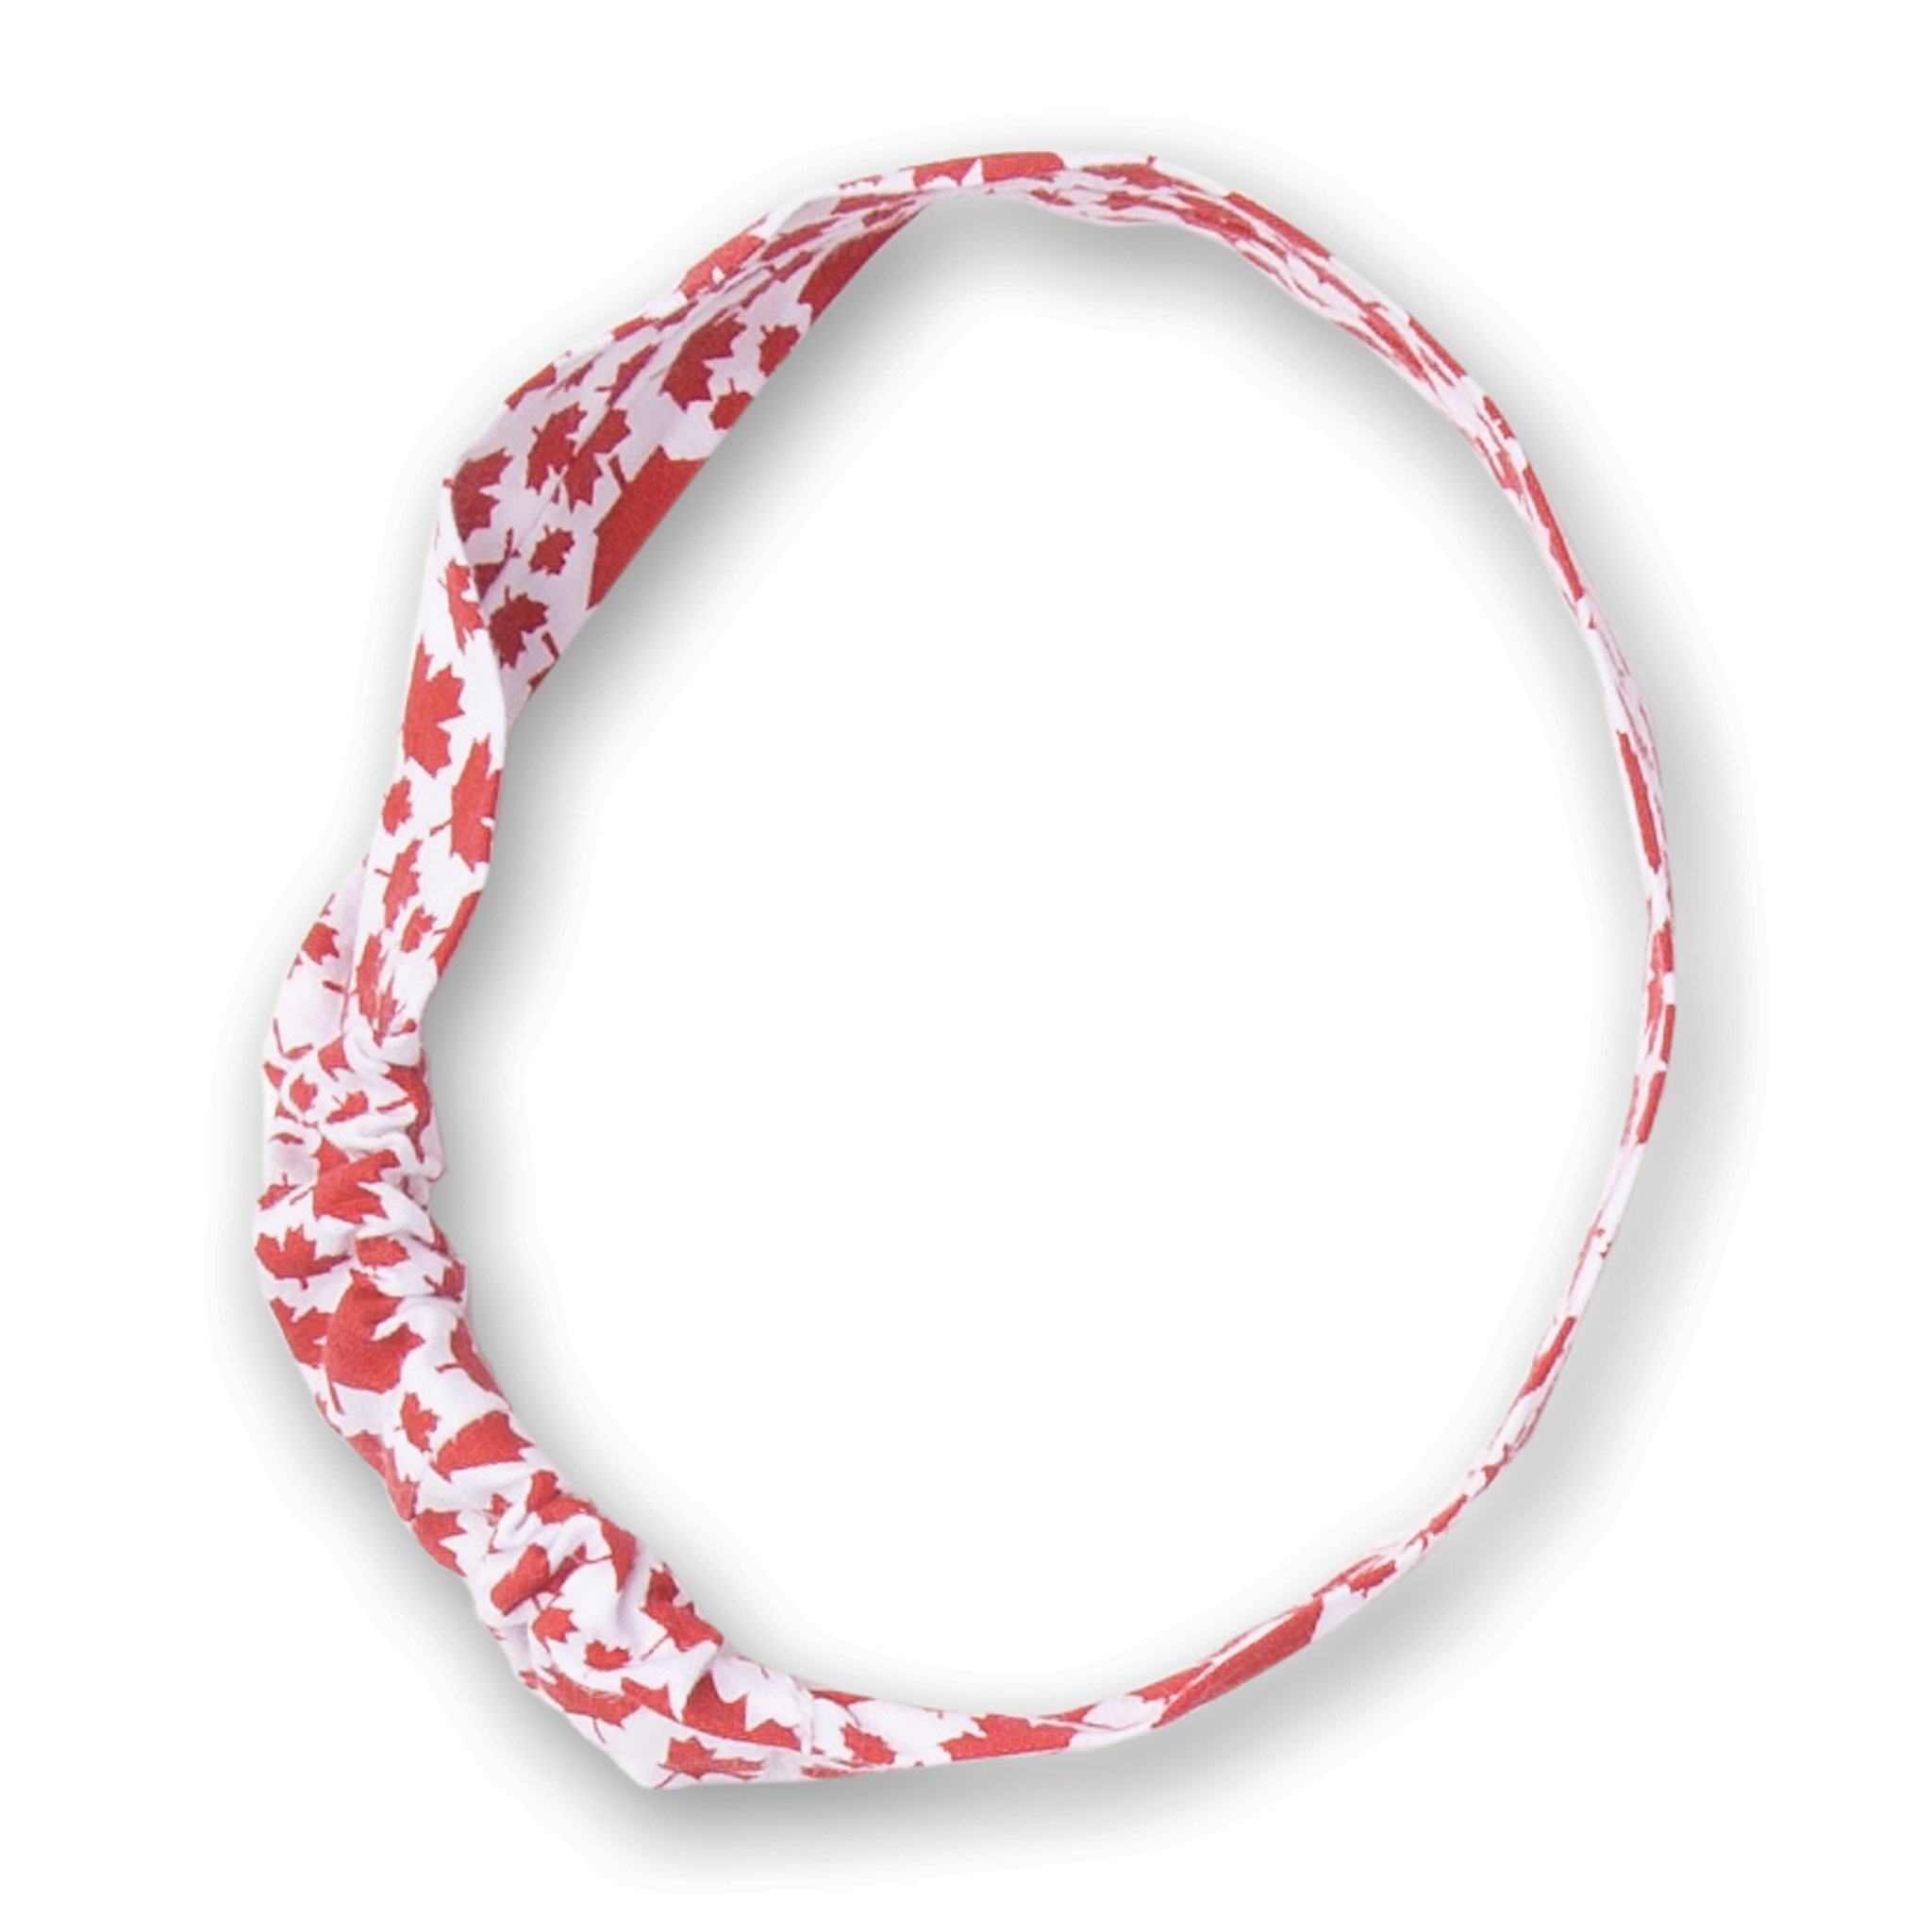 Strong and Free white headband with maple leaf pattern fits all 18 inch dolls.